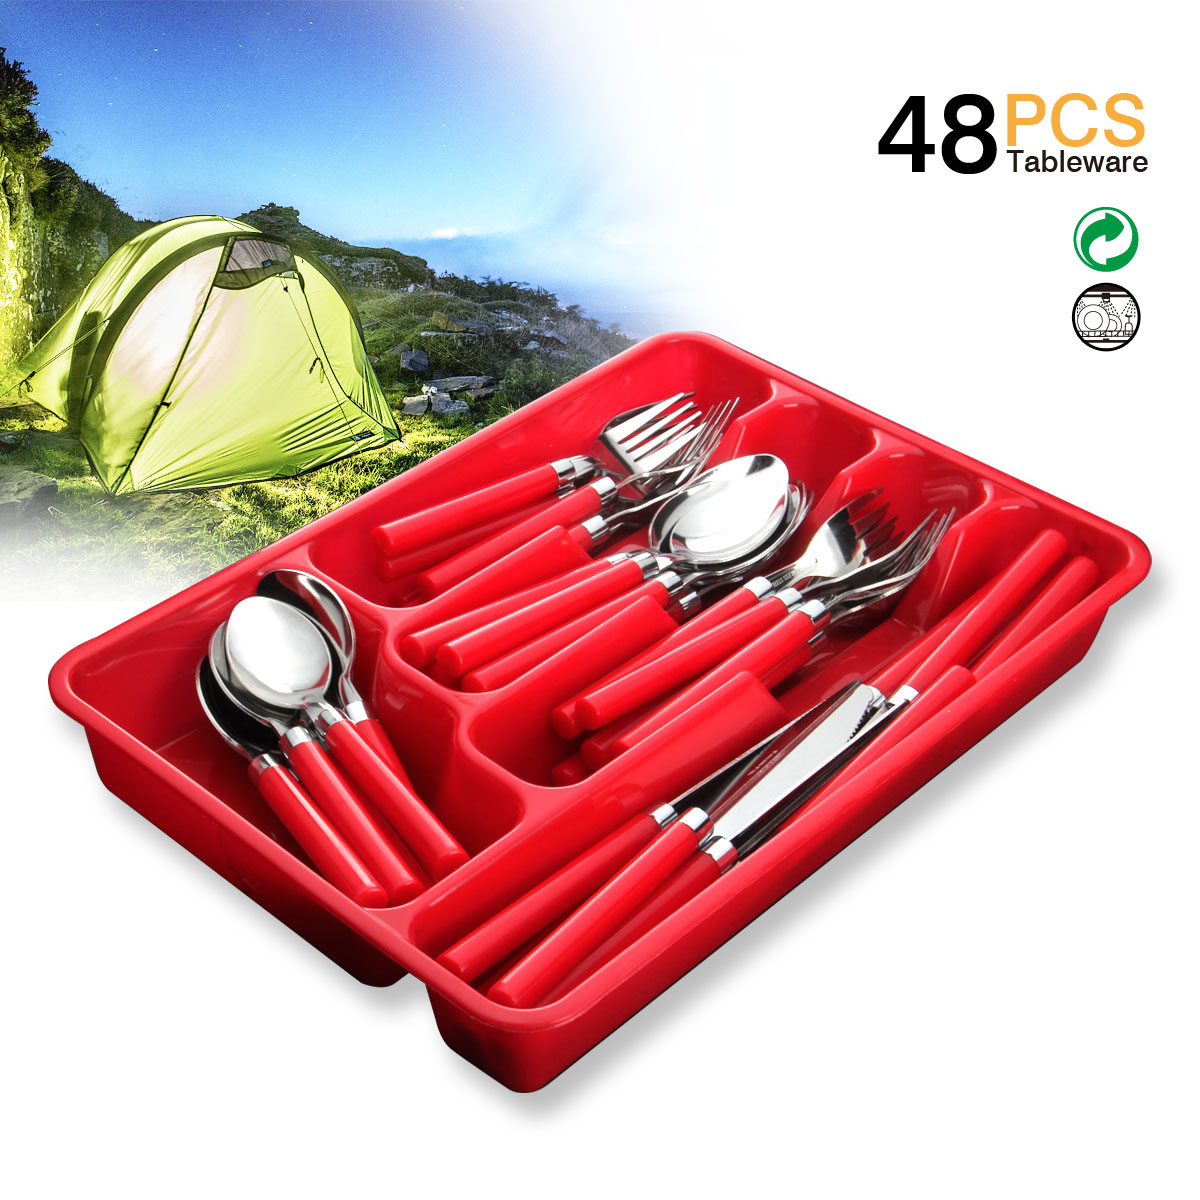 Red Handle Flatware Silverware Set Moxinox 48 Piece Flatware Tableware Plastic Handle Steak Knife Spoons Forks Knives Box Fork With Cutlery Tray Red